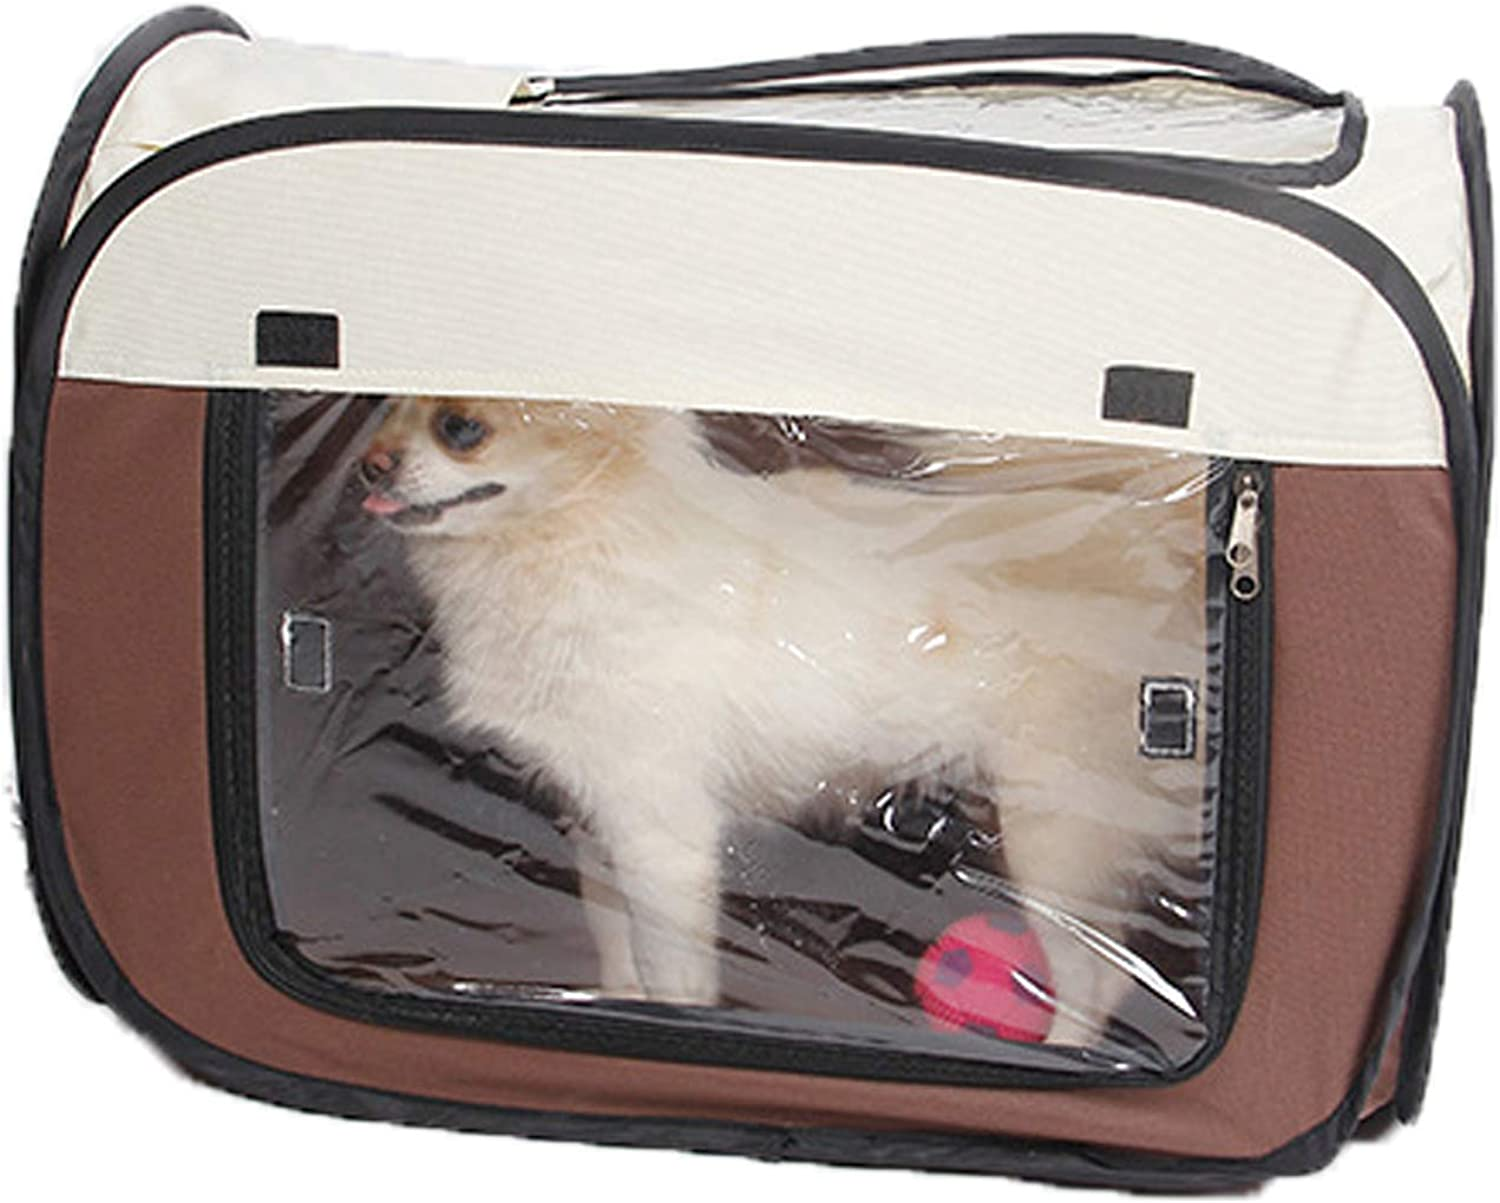 IshowStore Pet Hair Drying Box Room Tent Dryer Grooming House Dry Bag for Dogs Cats Rabbit Puppies Portable Foldable (Large)